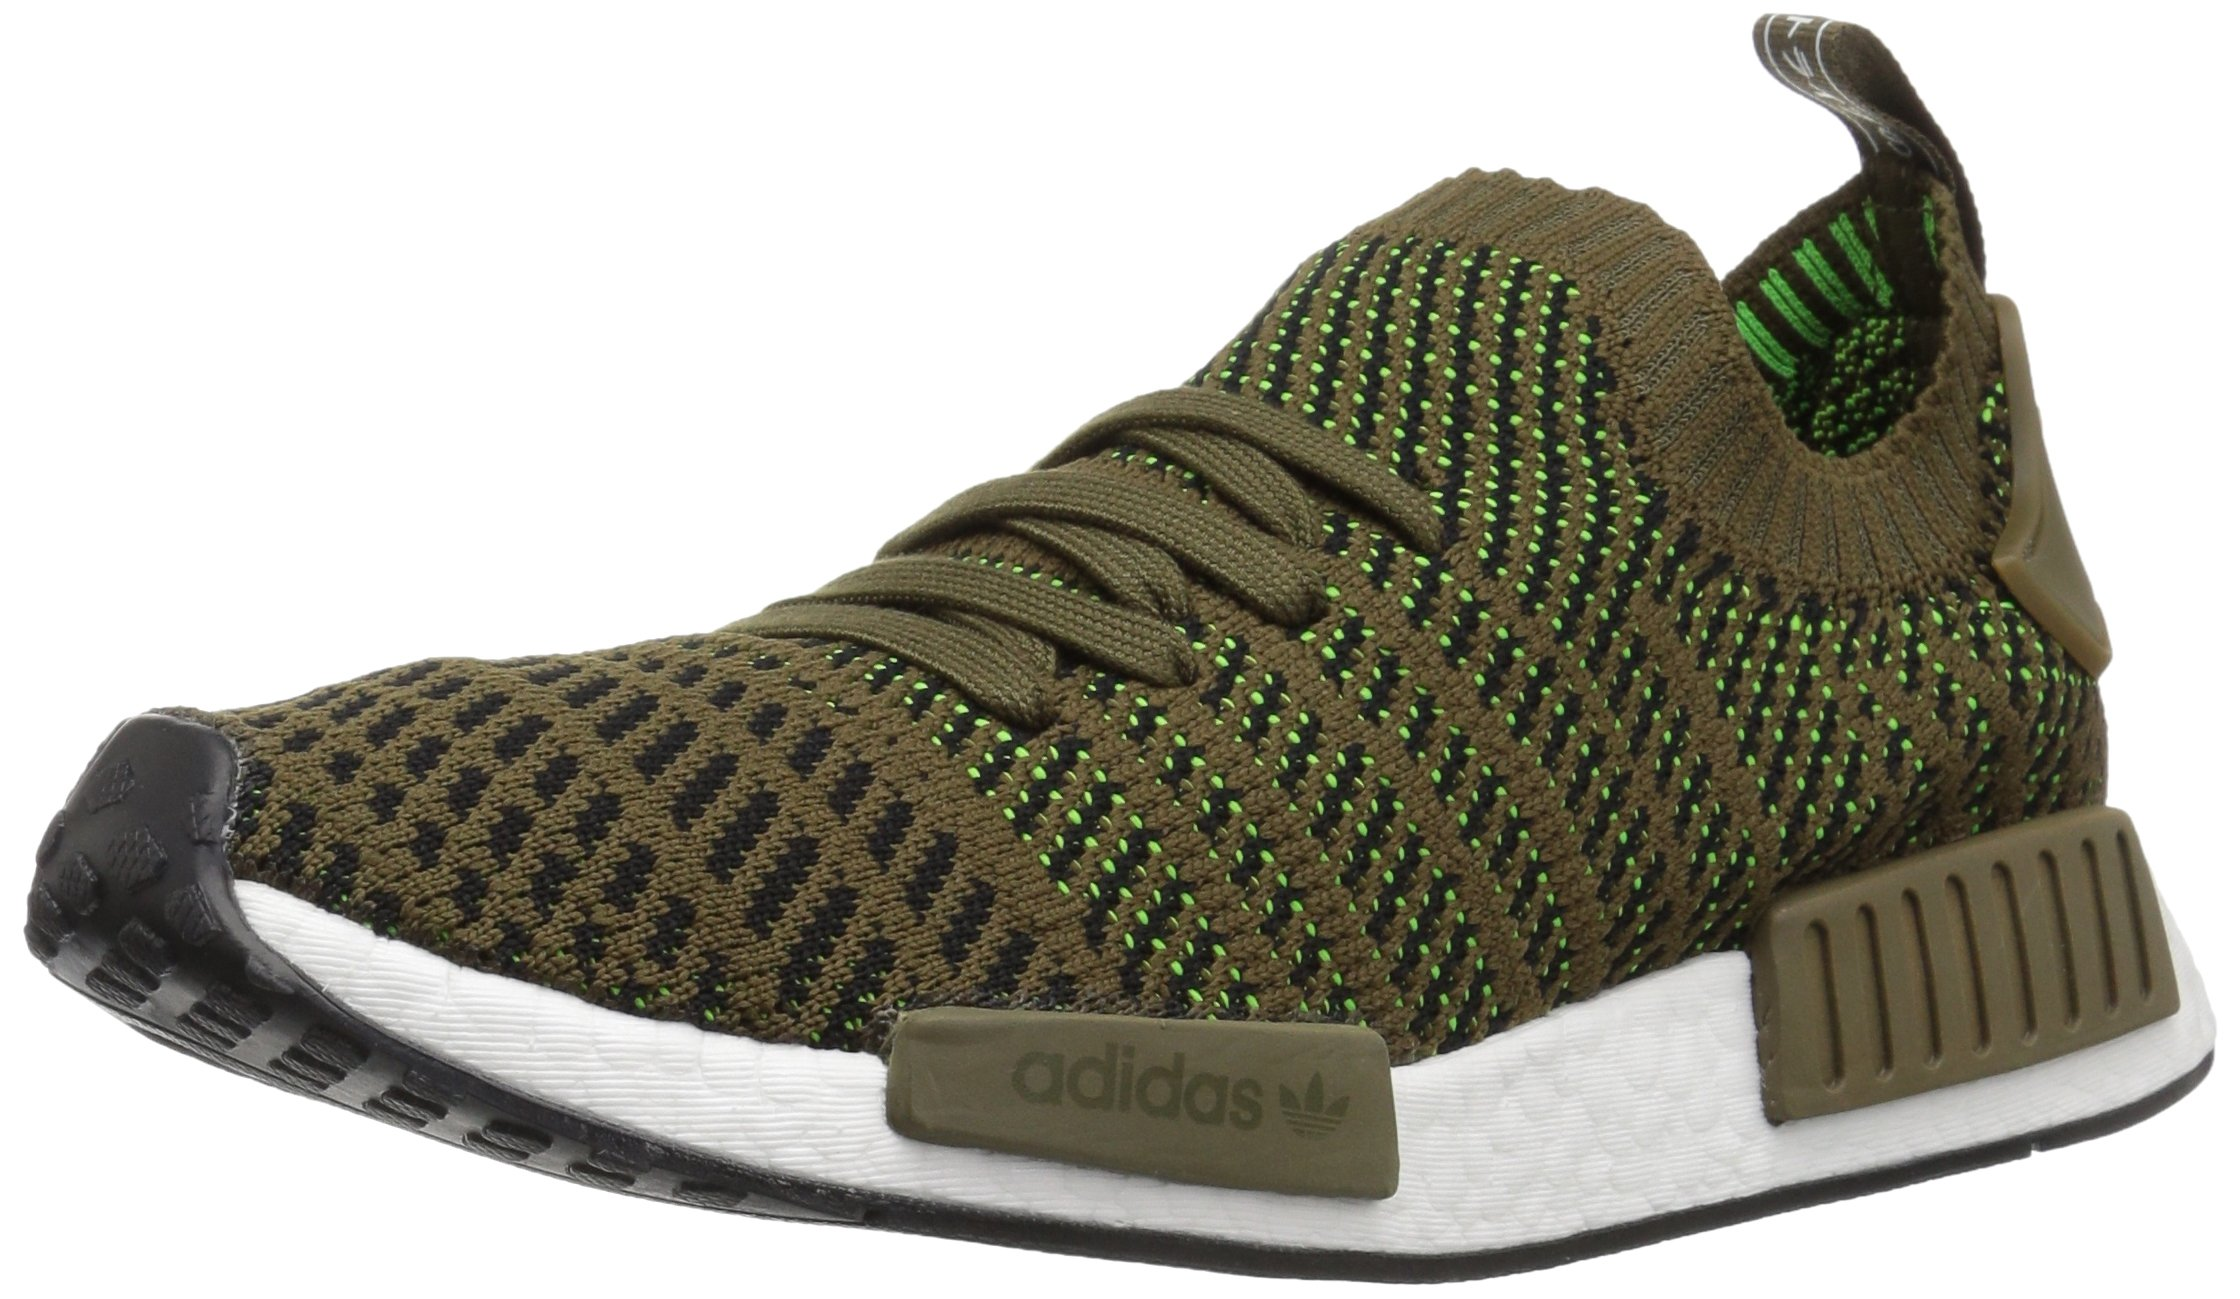 new styles 3cbef 294b7 adidas Originals Men's NMD_R1 STLT PK Running Shoe, Trace Olive/Black/Lime,  6 M US